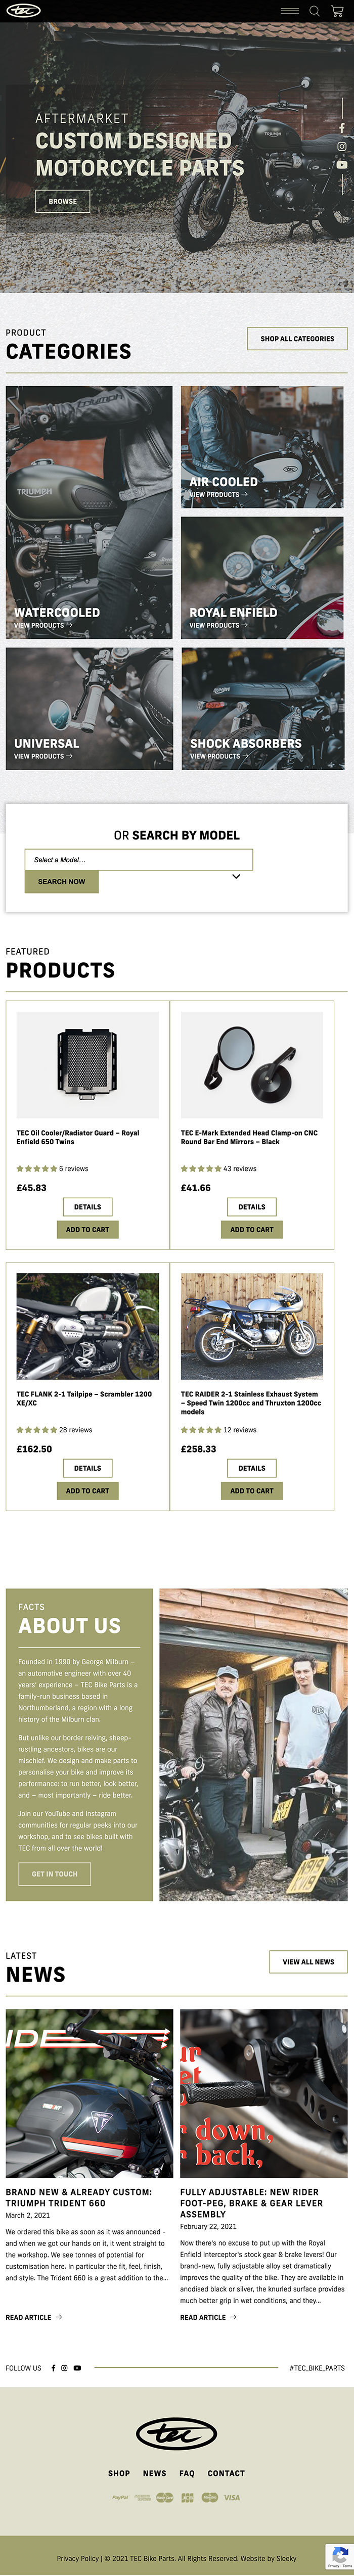 Tablet view of bike tech company's website